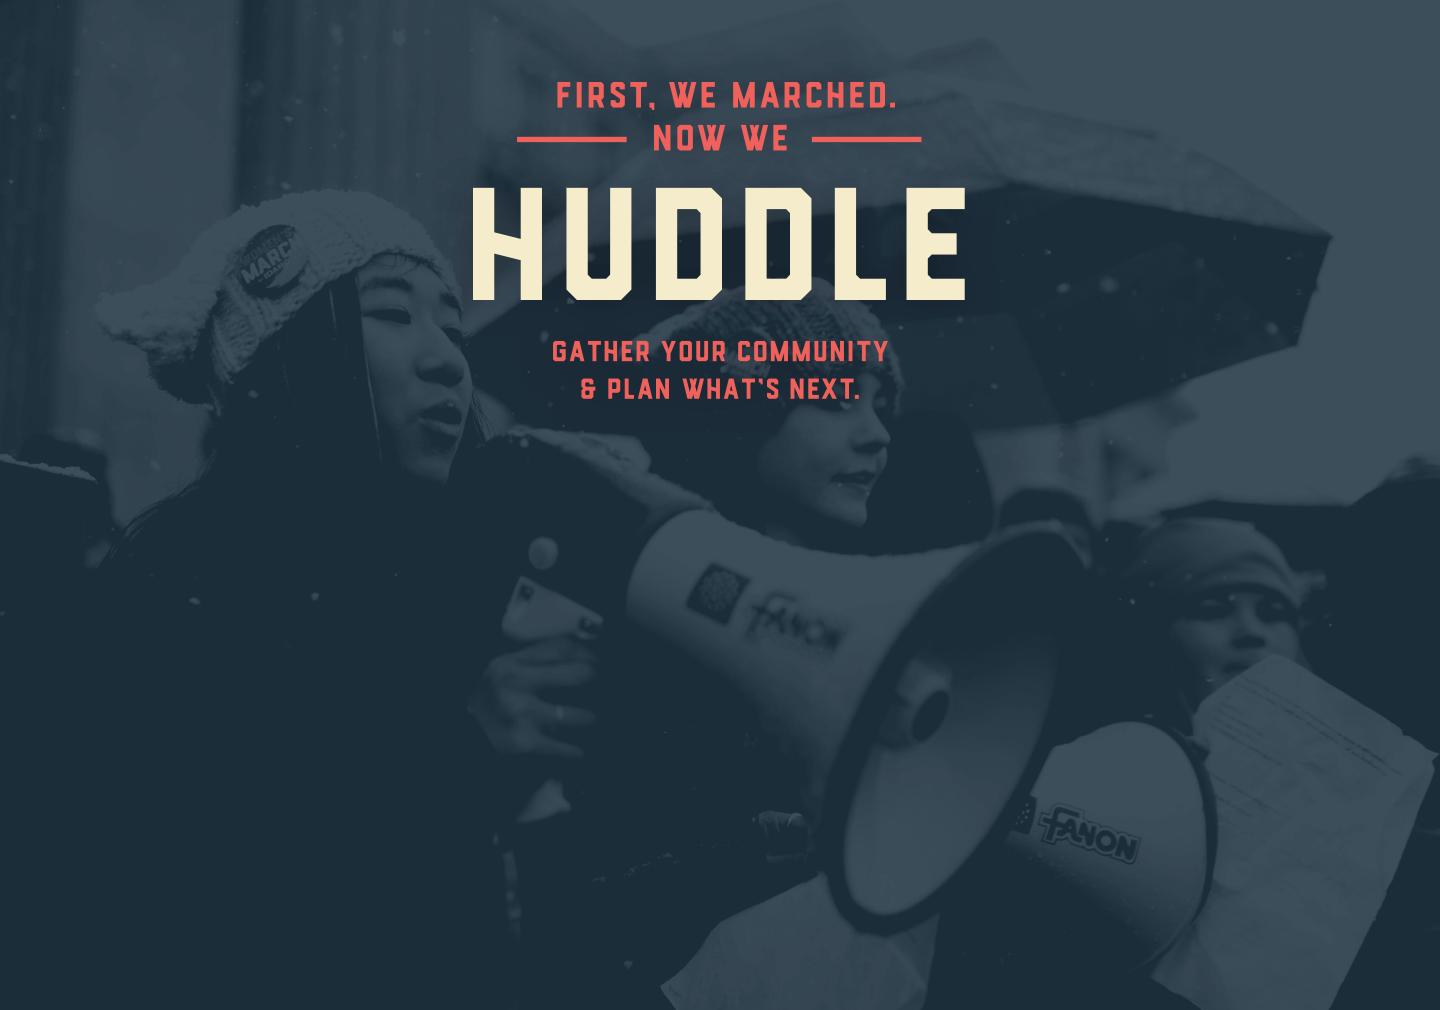 Action Huddle Womens March - Womens march map of the us